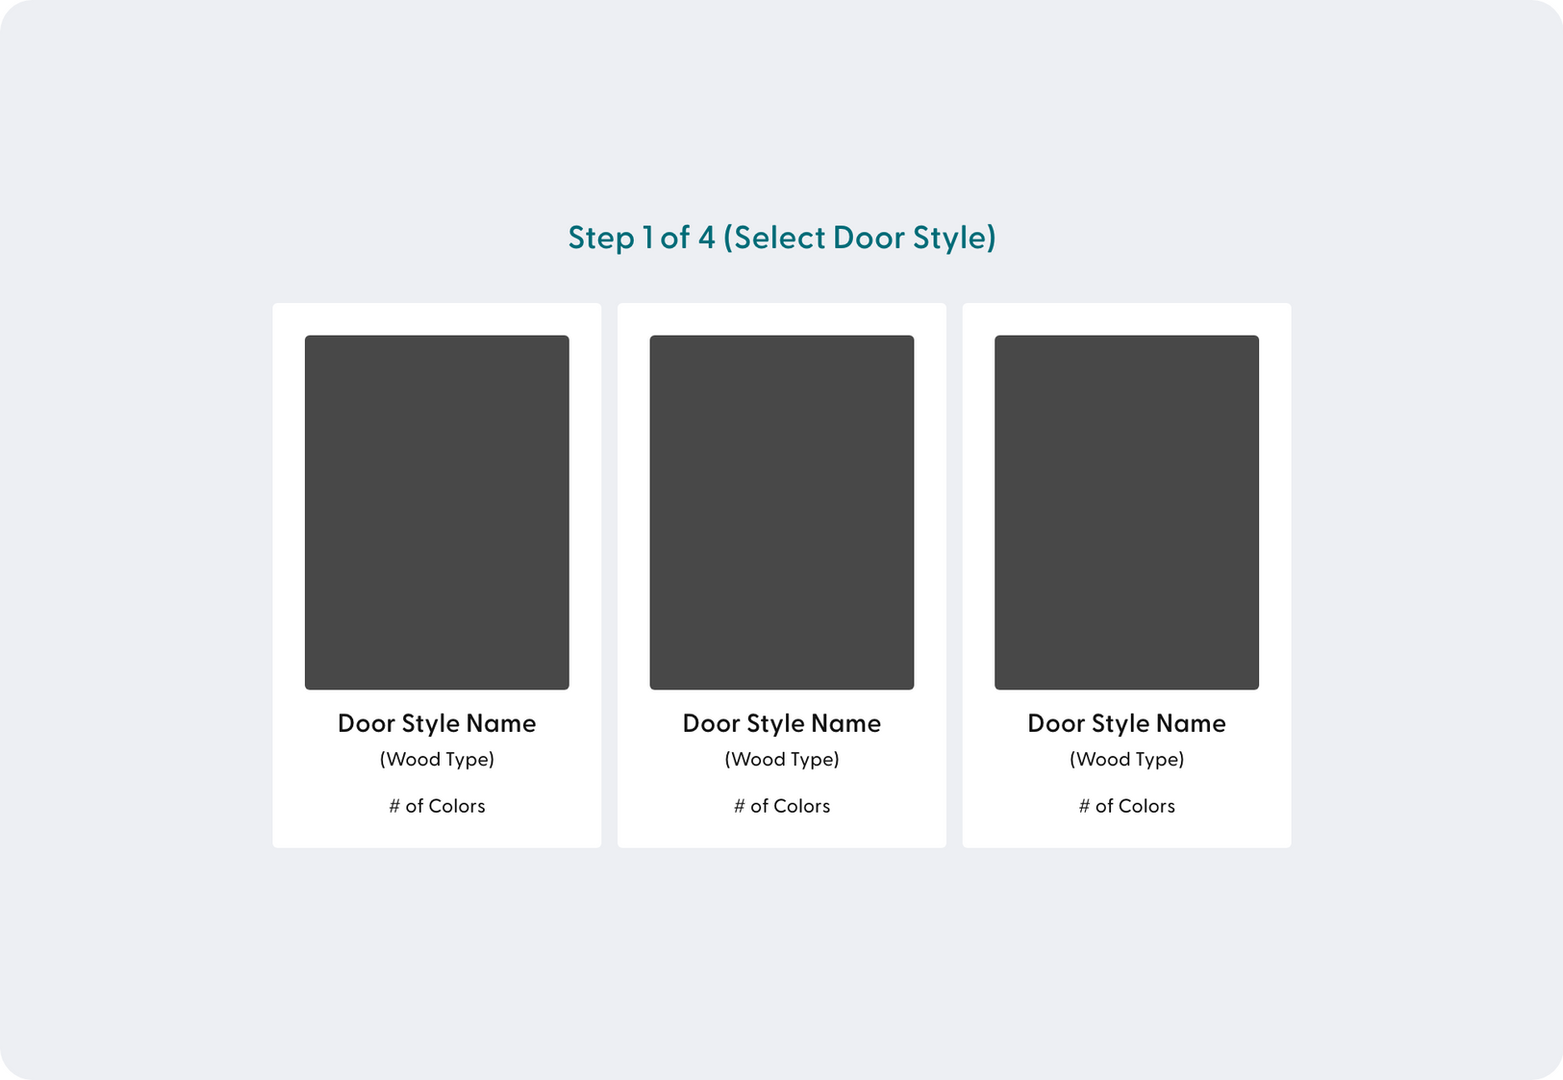 Step 1 of 4 (Select Door Style)@2x.png